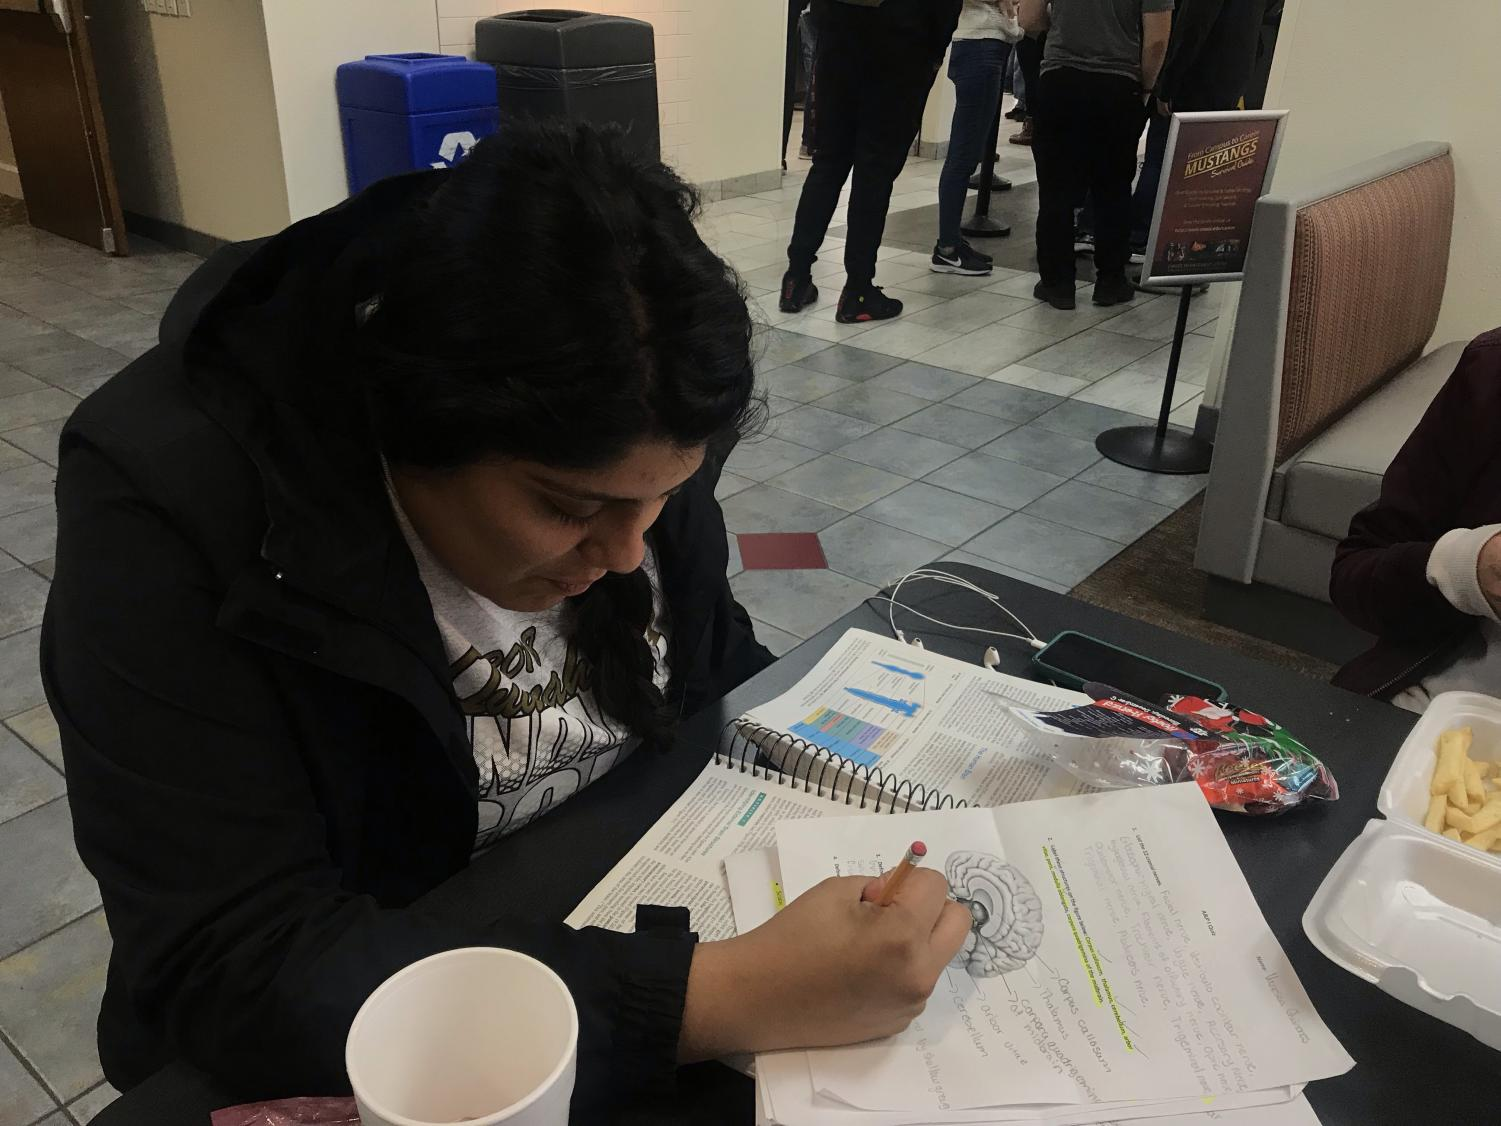 Vanessa Quiñones, radiology freshman, studying for an upcoming test at the Clark Student Center.